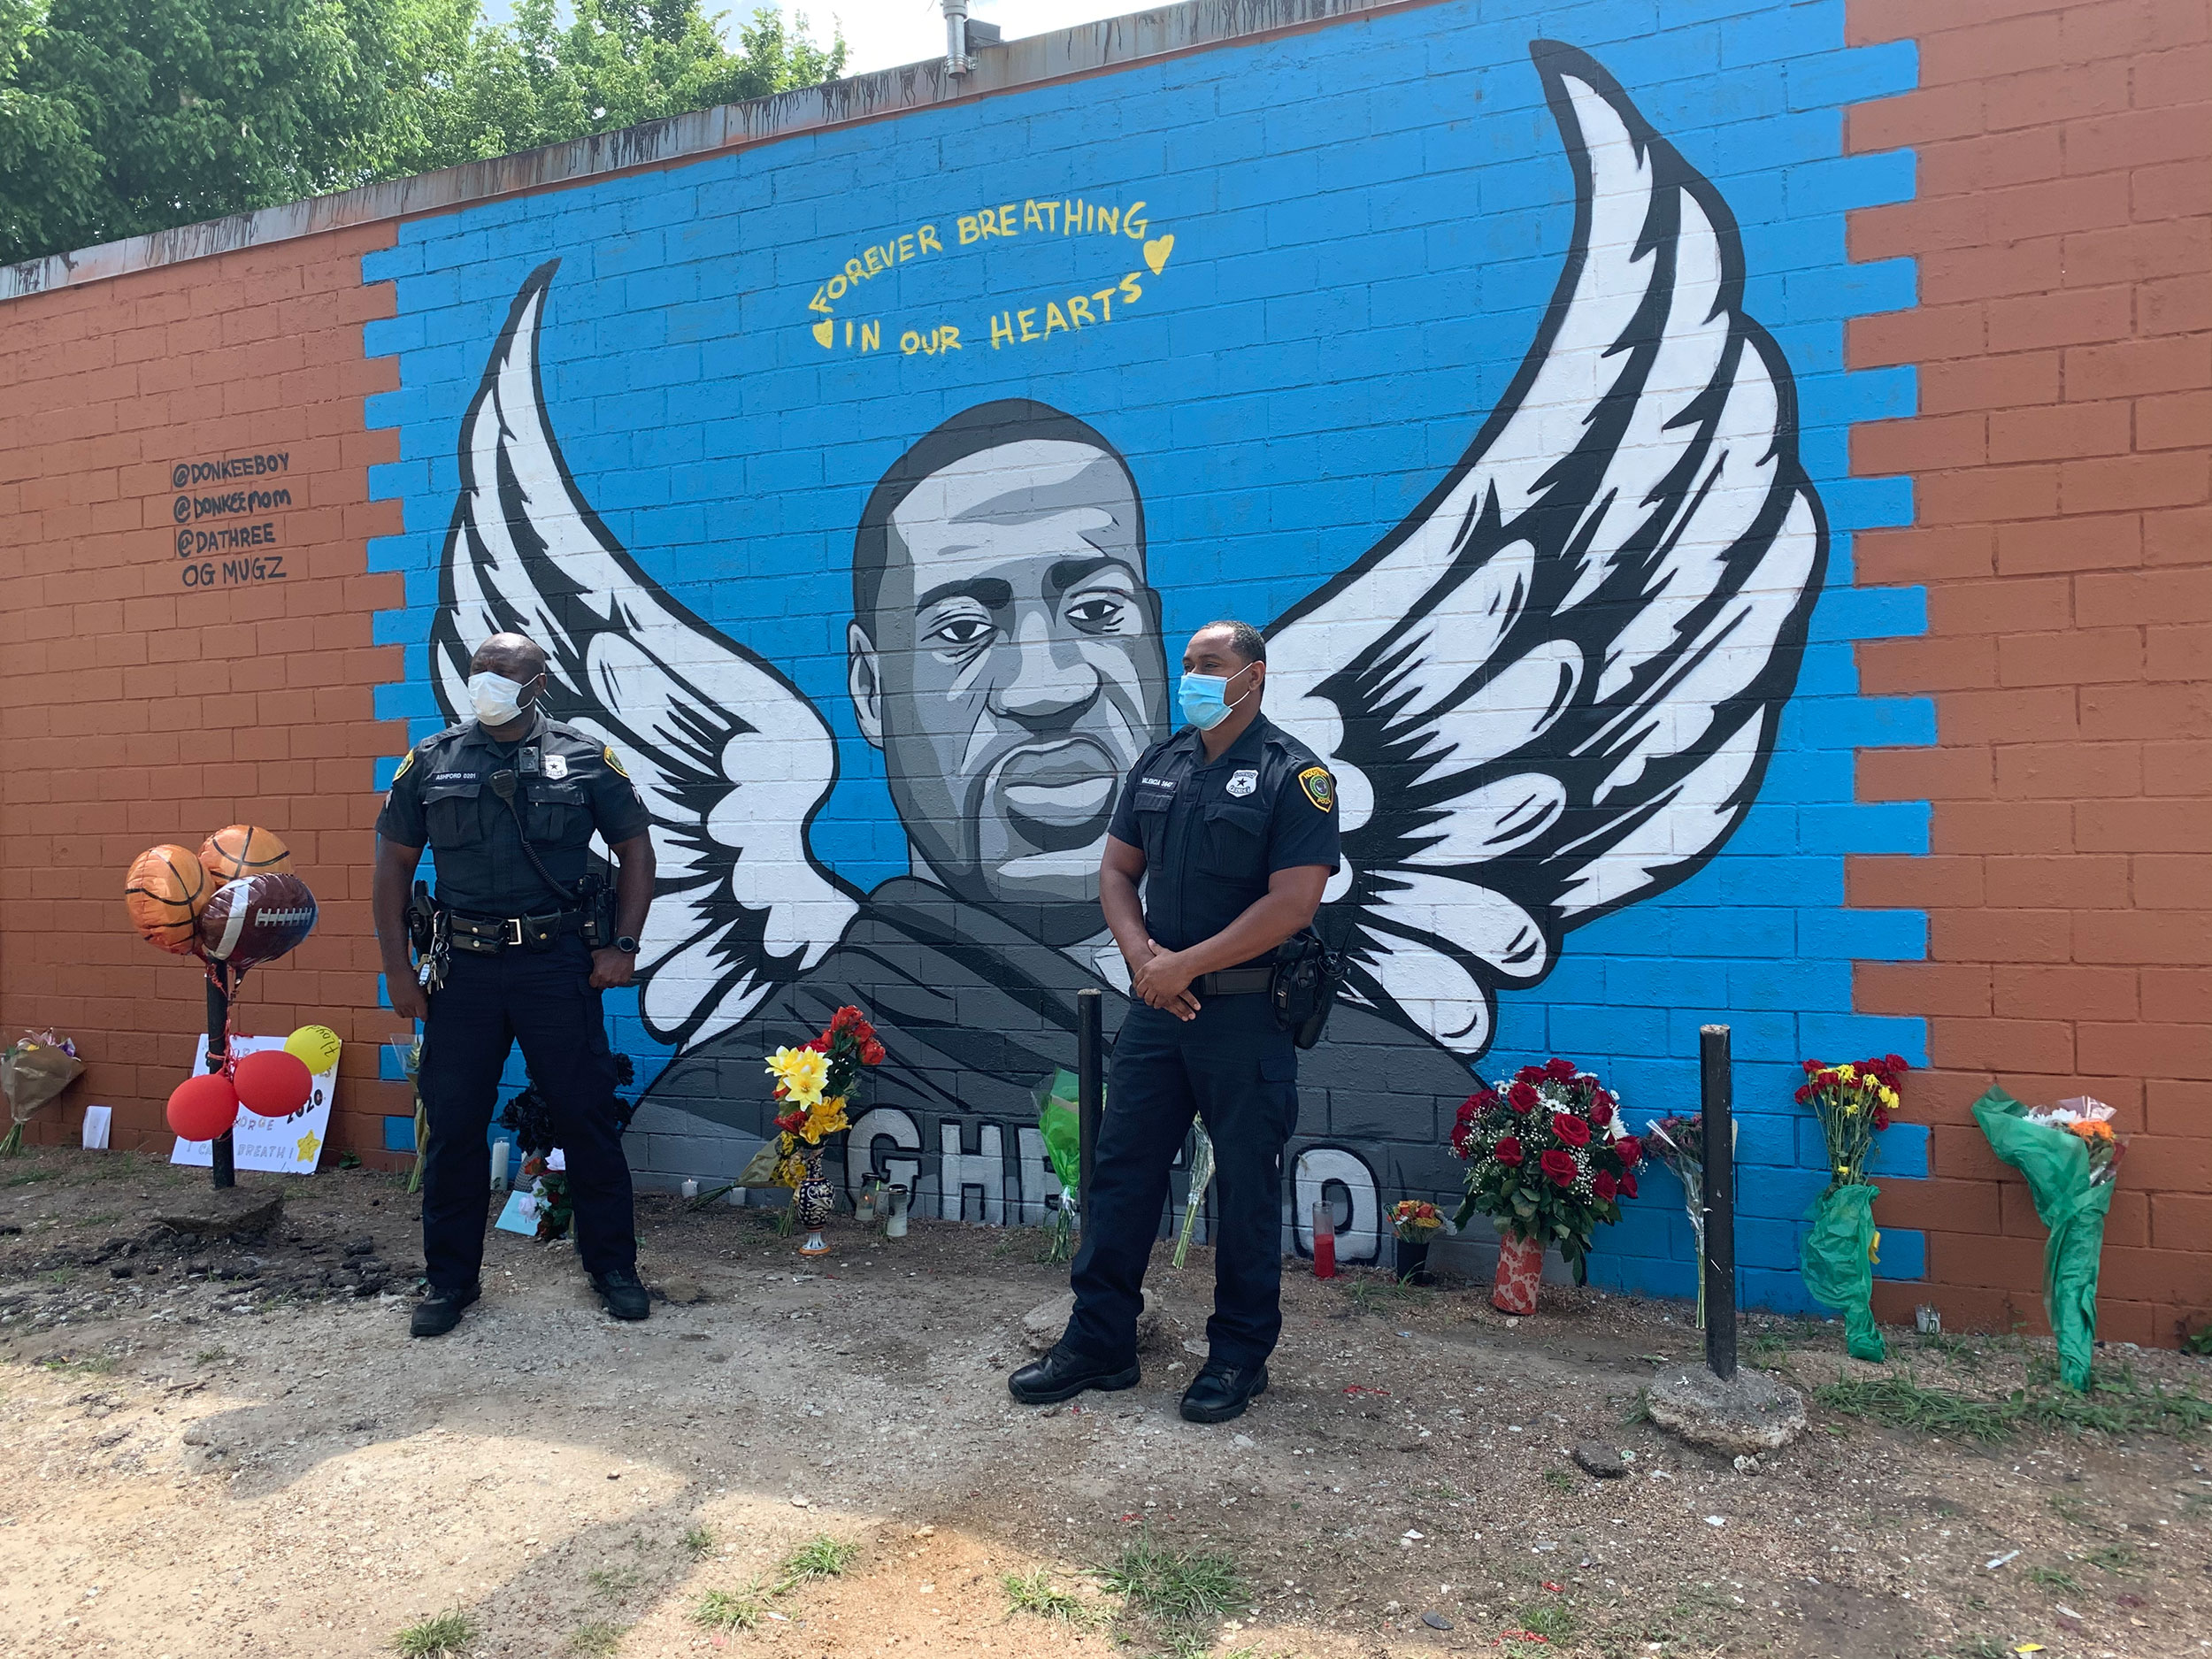 Houston police officers pay their respects to George Floyd at a mural in his hometown